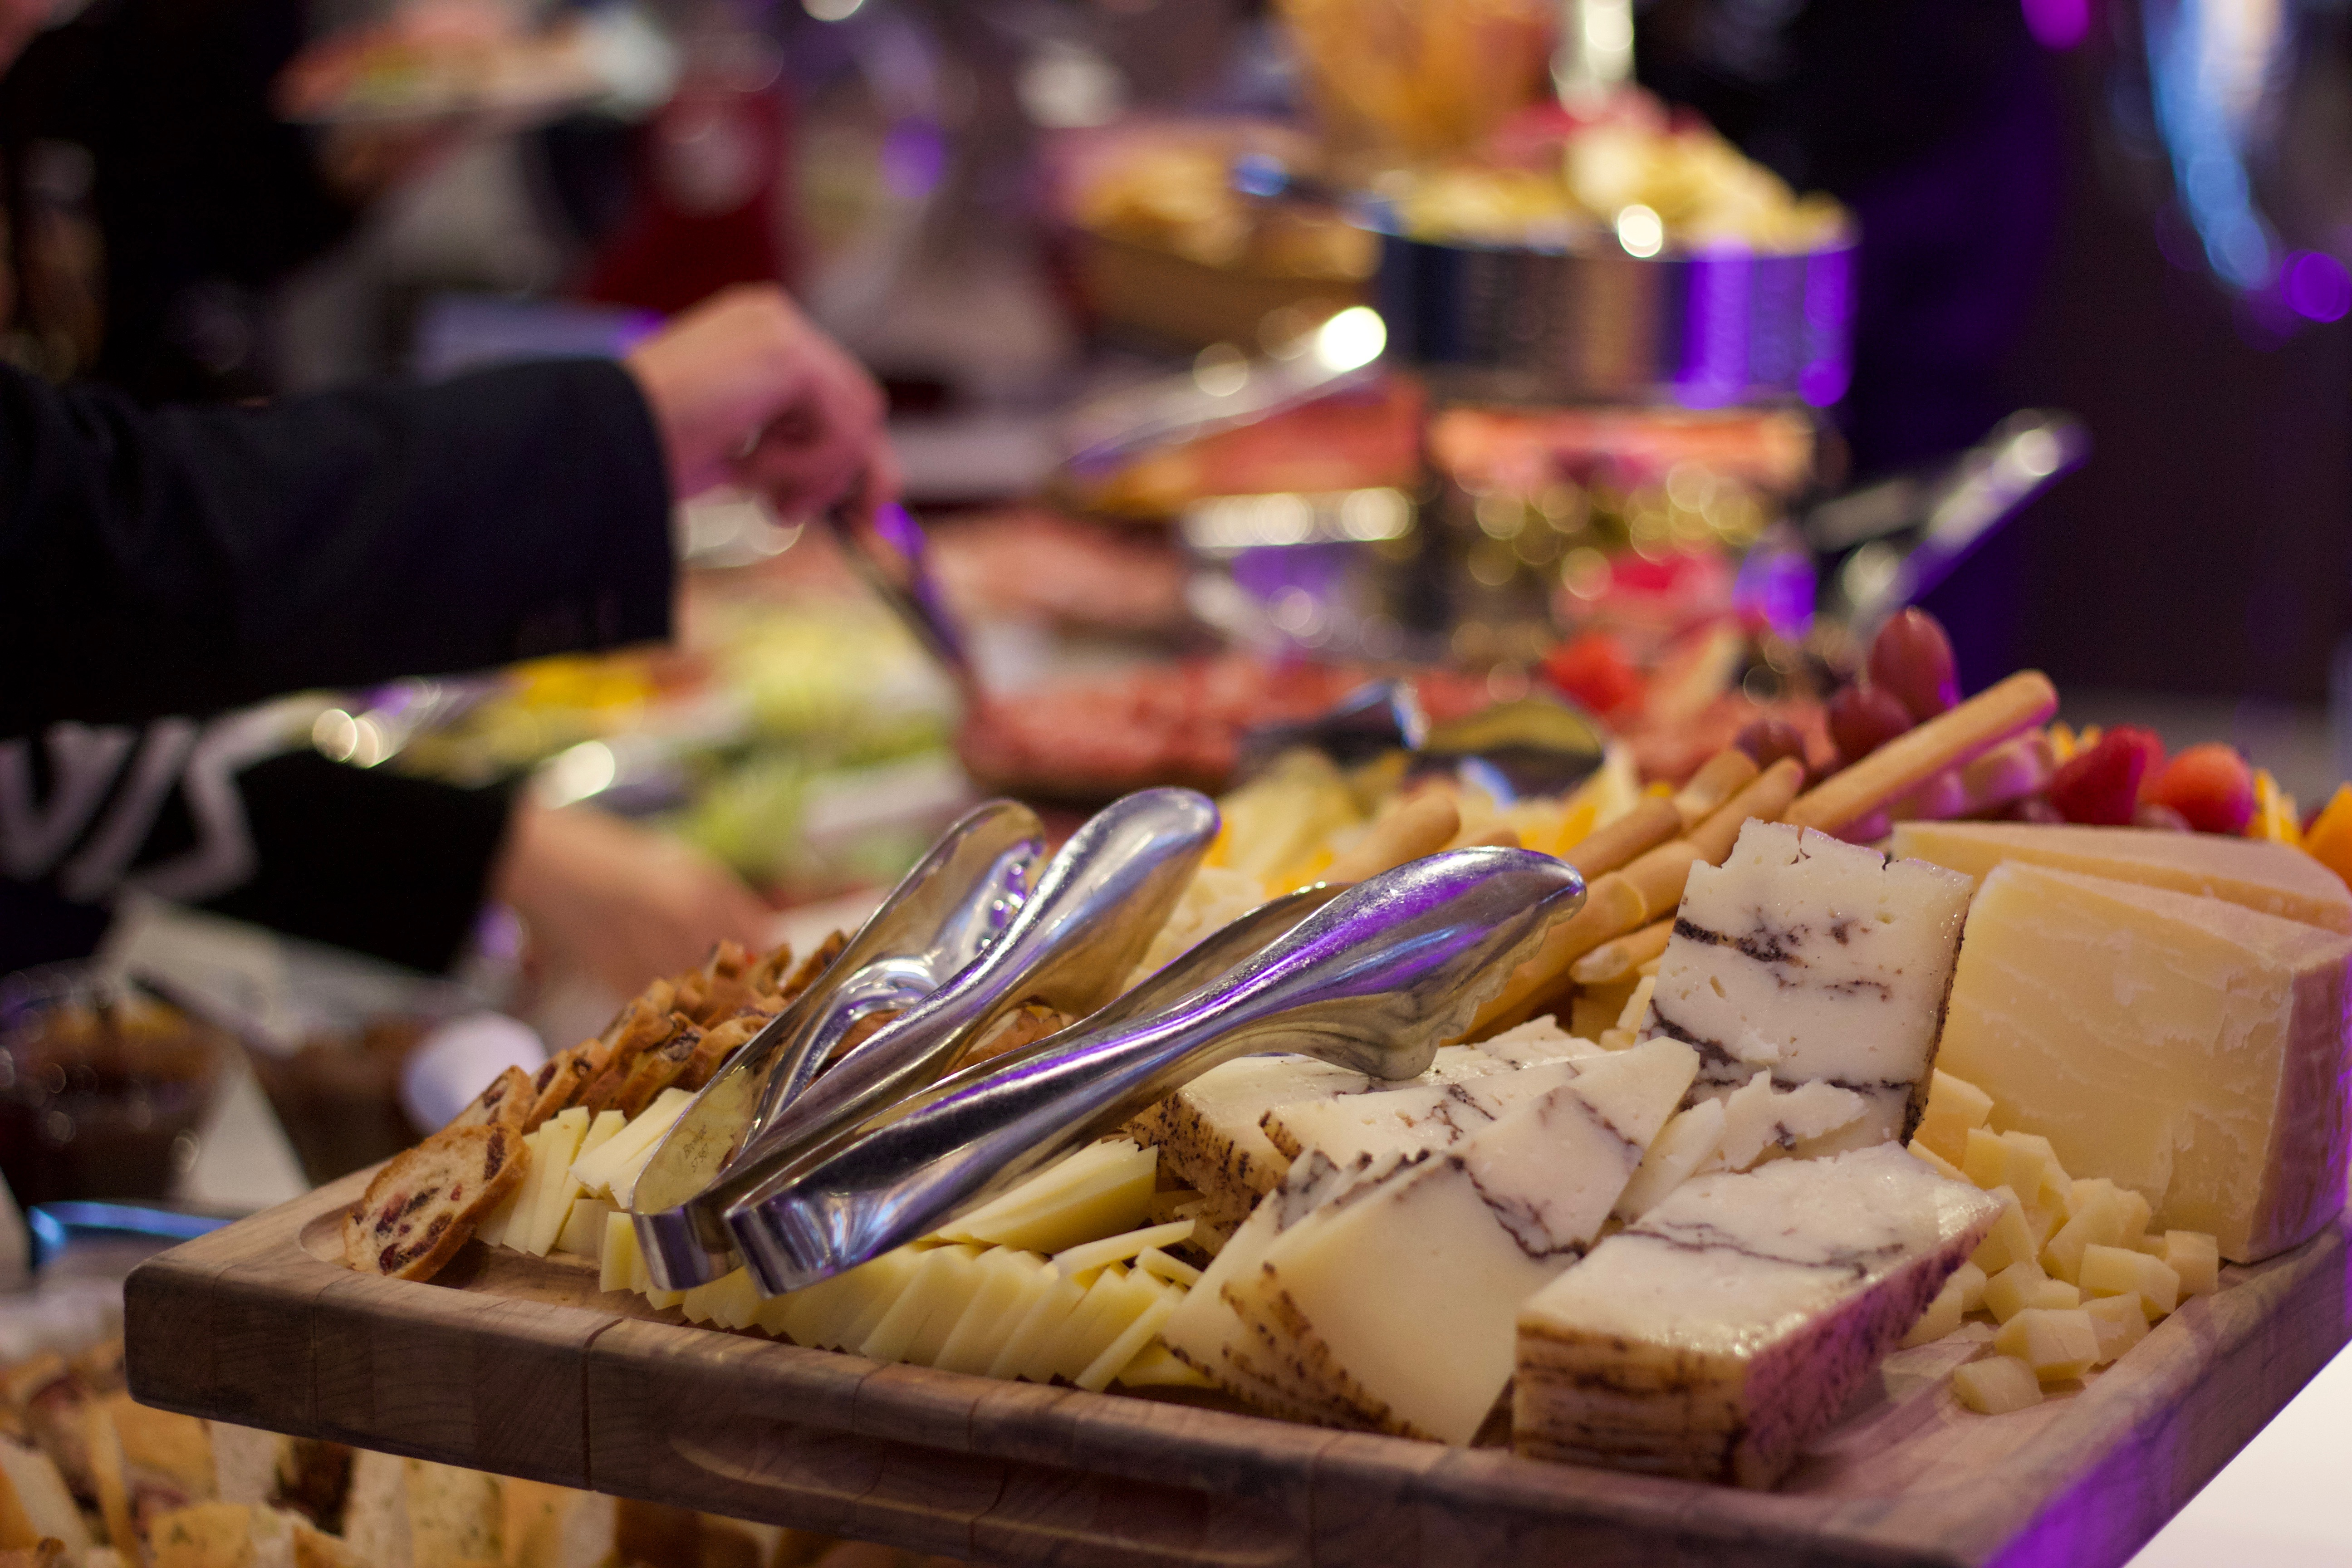 A delicious cheese platter at Le Chateau Parc's food blogger event